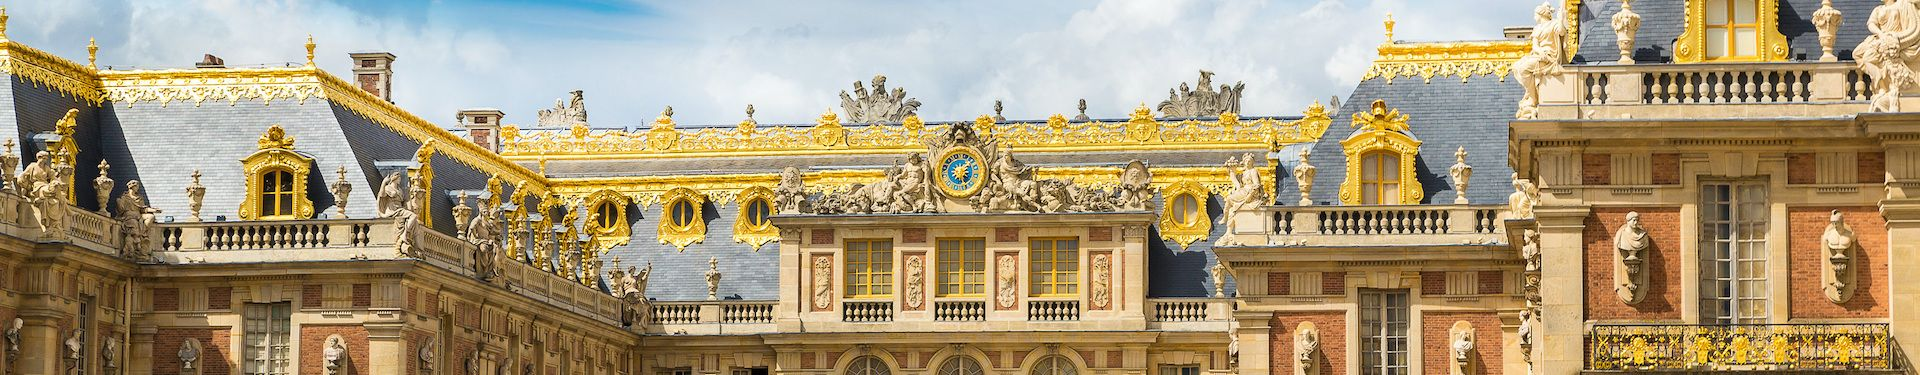 Europes Top attractions Versailles